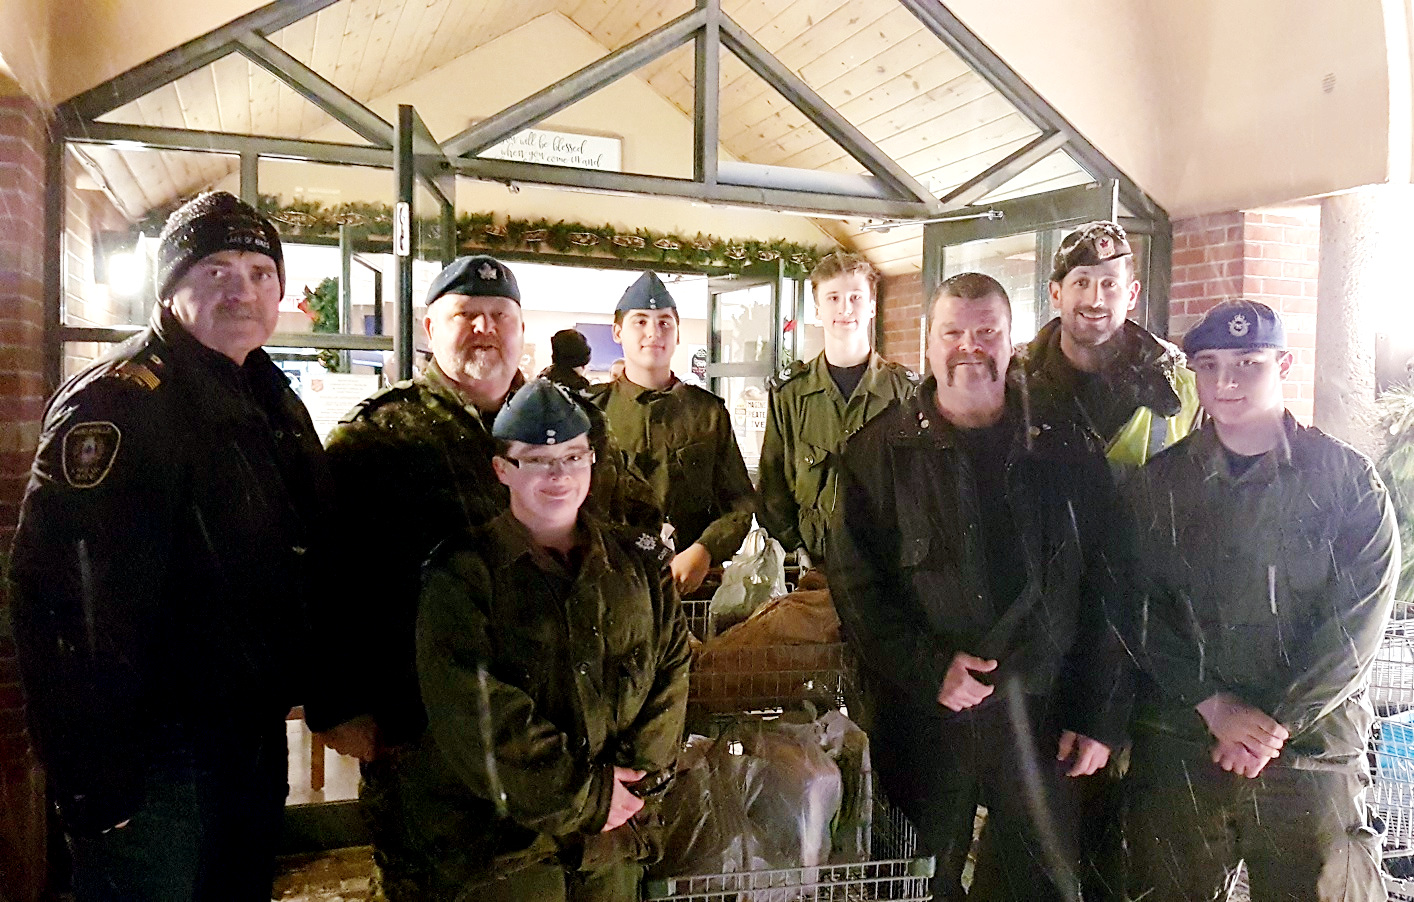 Firefighters and cadets play a big role in the food drive effort, including (from left) Huntsville Fire Chief Steve Hernen, Captain Adam Smith, Warrant Officer 2nd Class Emily Cain, Cpl Charlie Fraser, Cpl Evan Scholten, District Chief Brady Corry, Civilian Instructor Derek Mossman, and Warrant Officer 1st Class Matthew Sutey